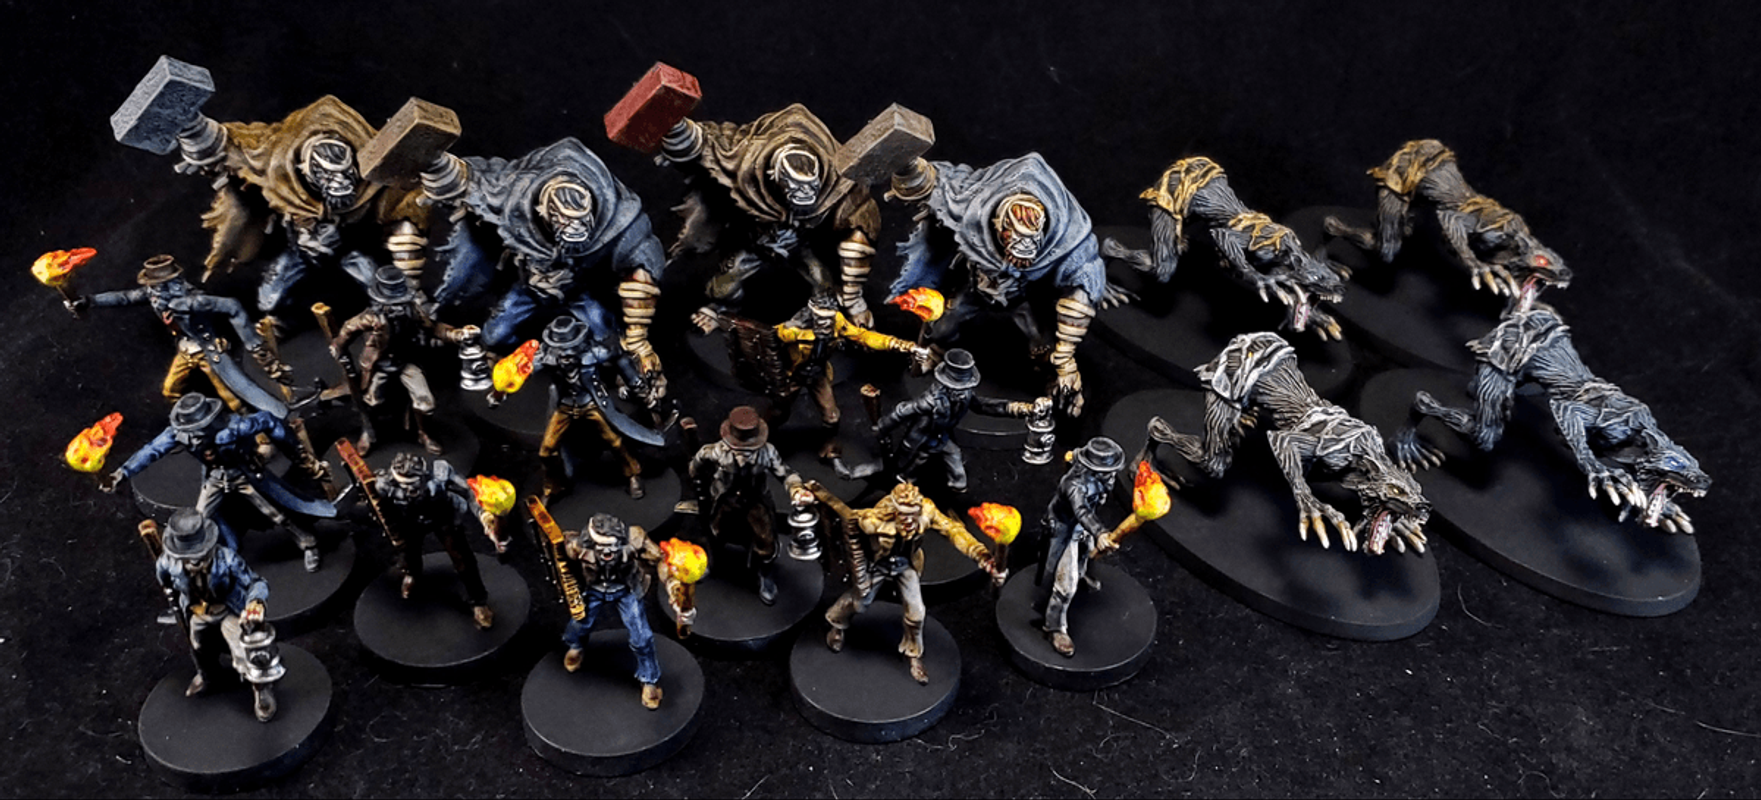 Bloodborne: The Board Game miniatures